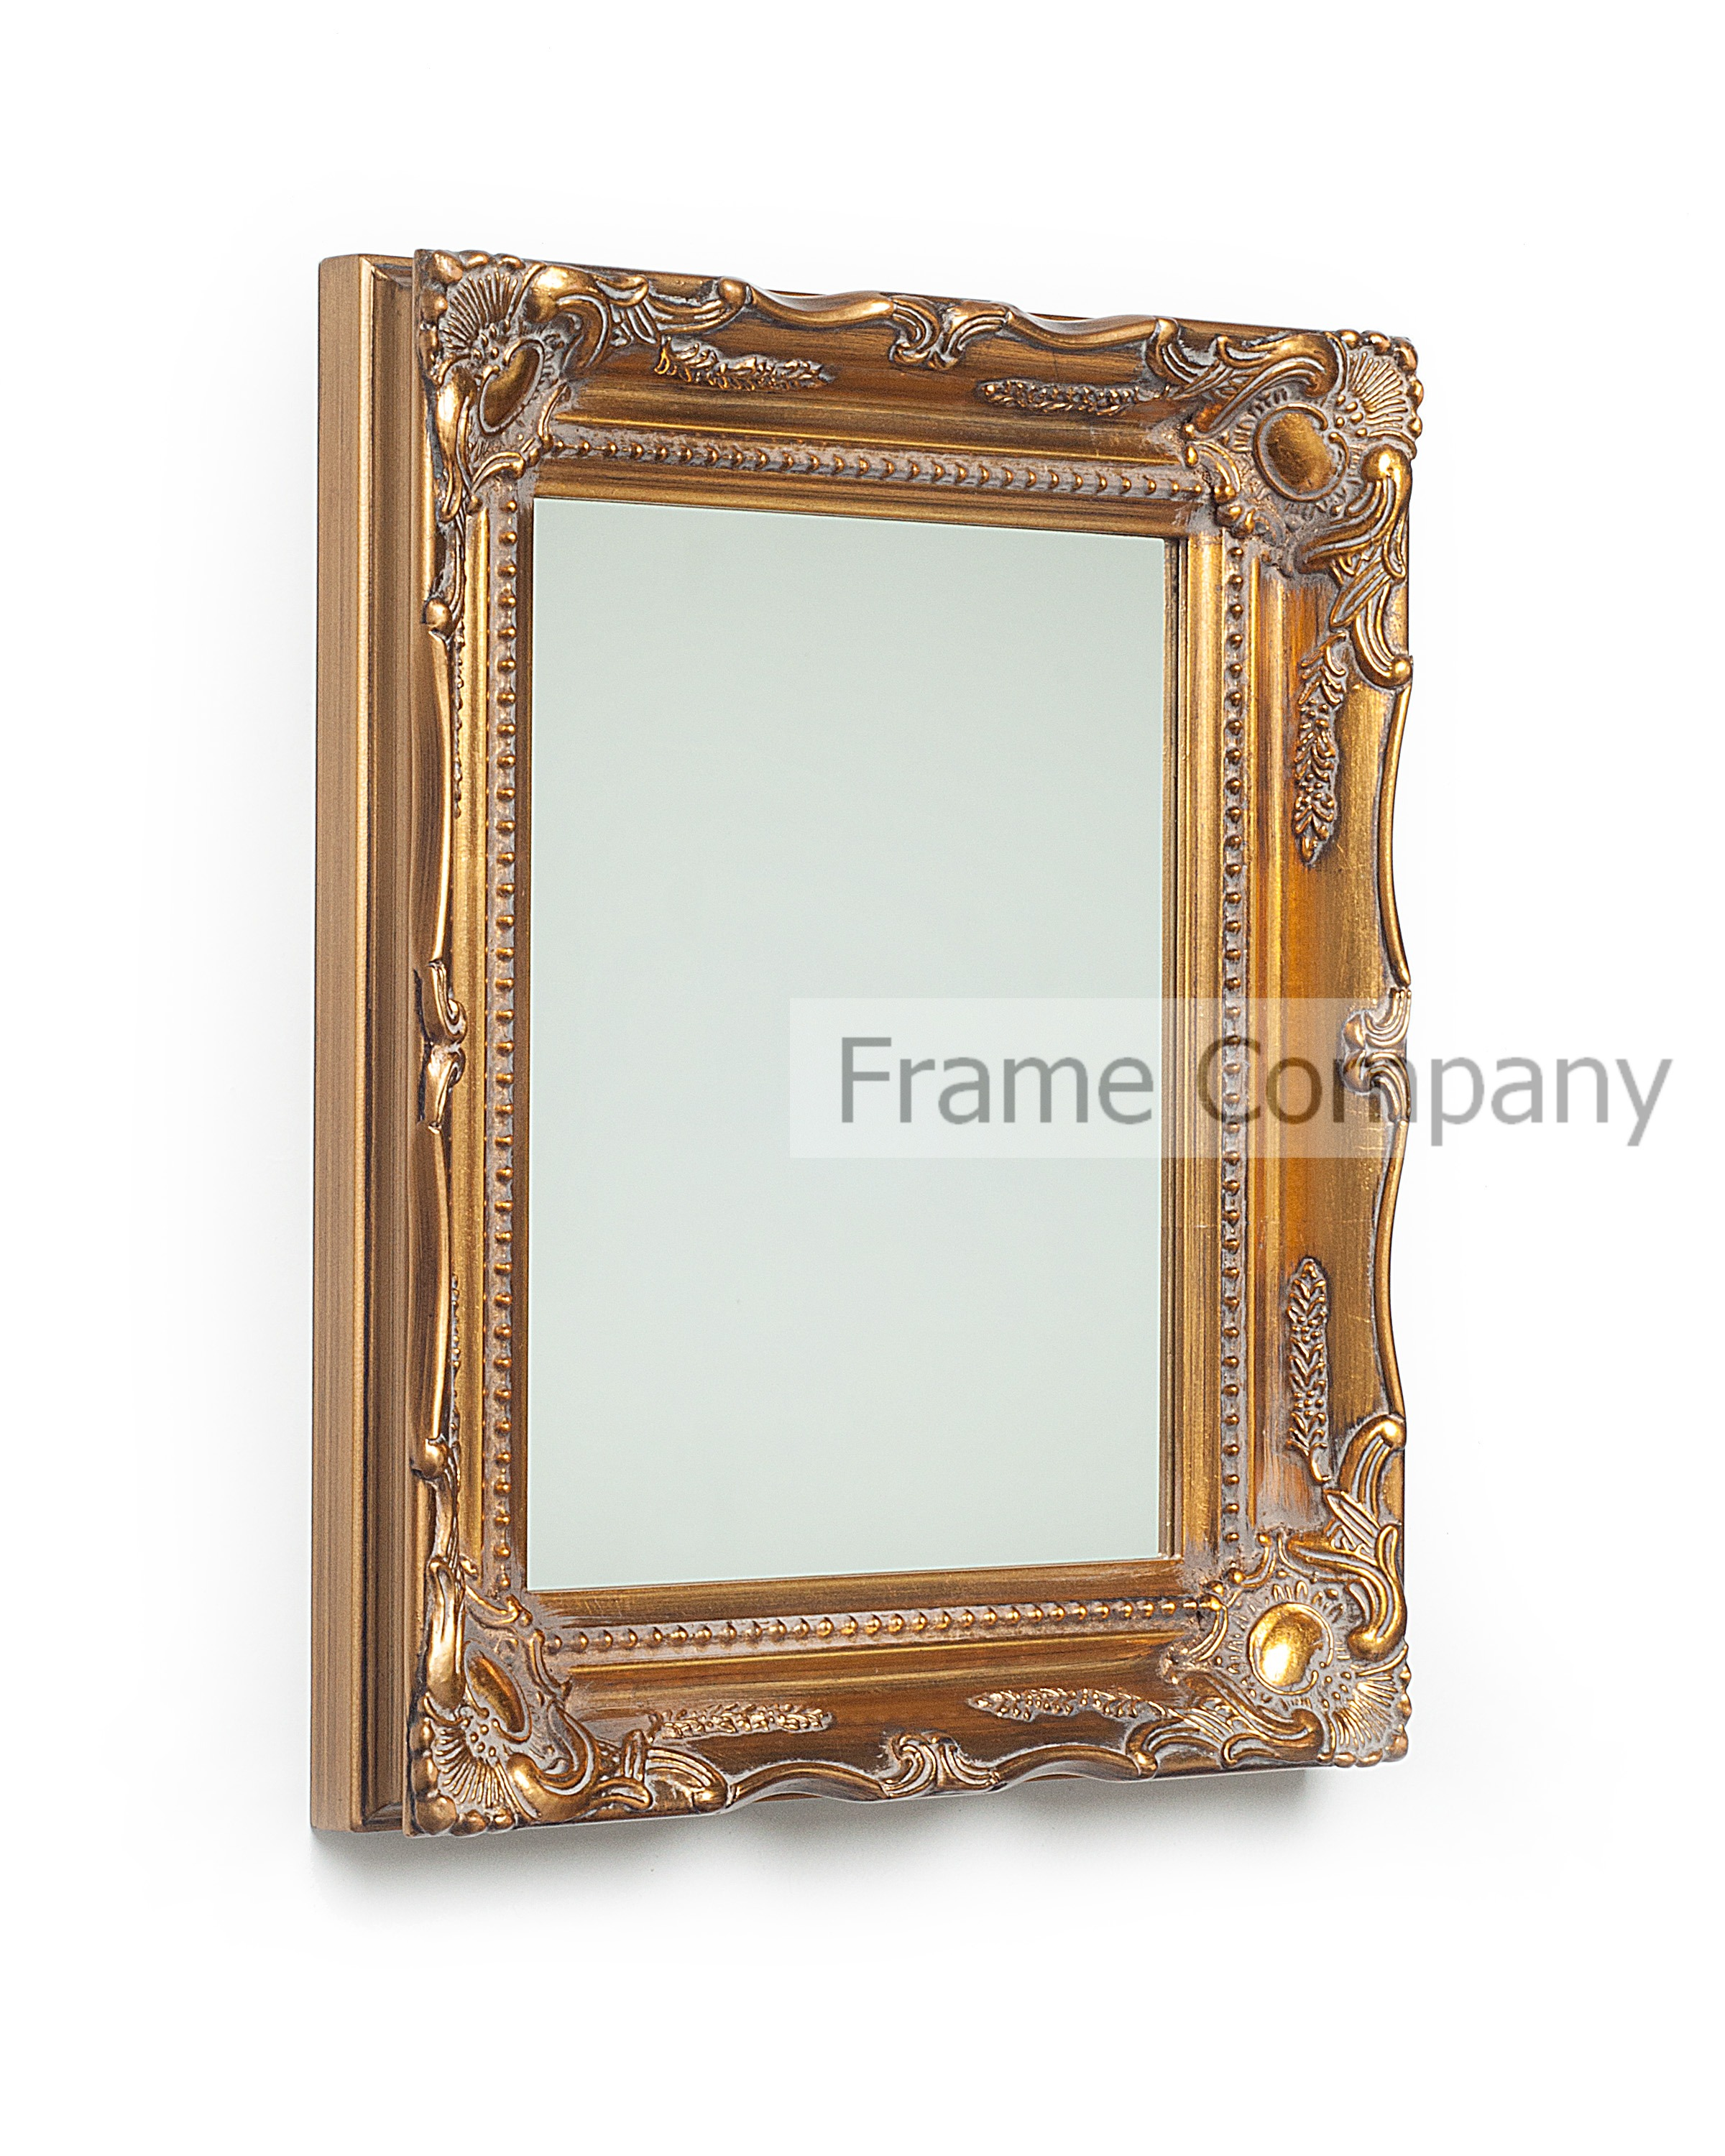 Frame Company Wooden Mirror Classic Swept Ornate Vintage Picture ...